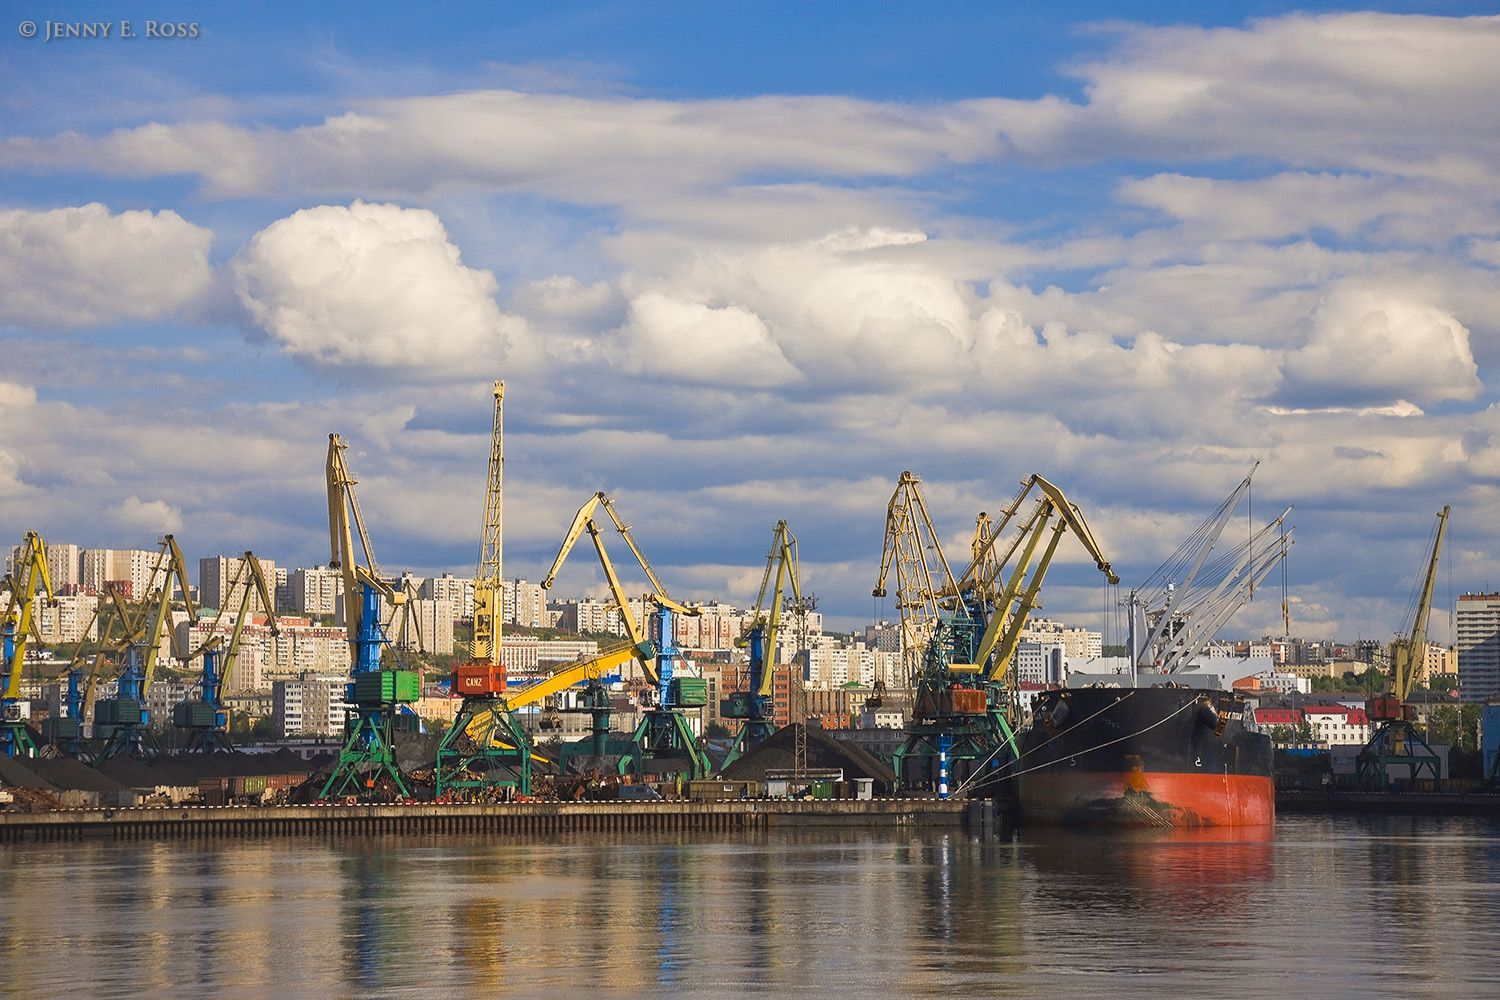 Port of Murmansk, Kolskiy Gulf, Kola Peninsula, Barents Sea, Russia